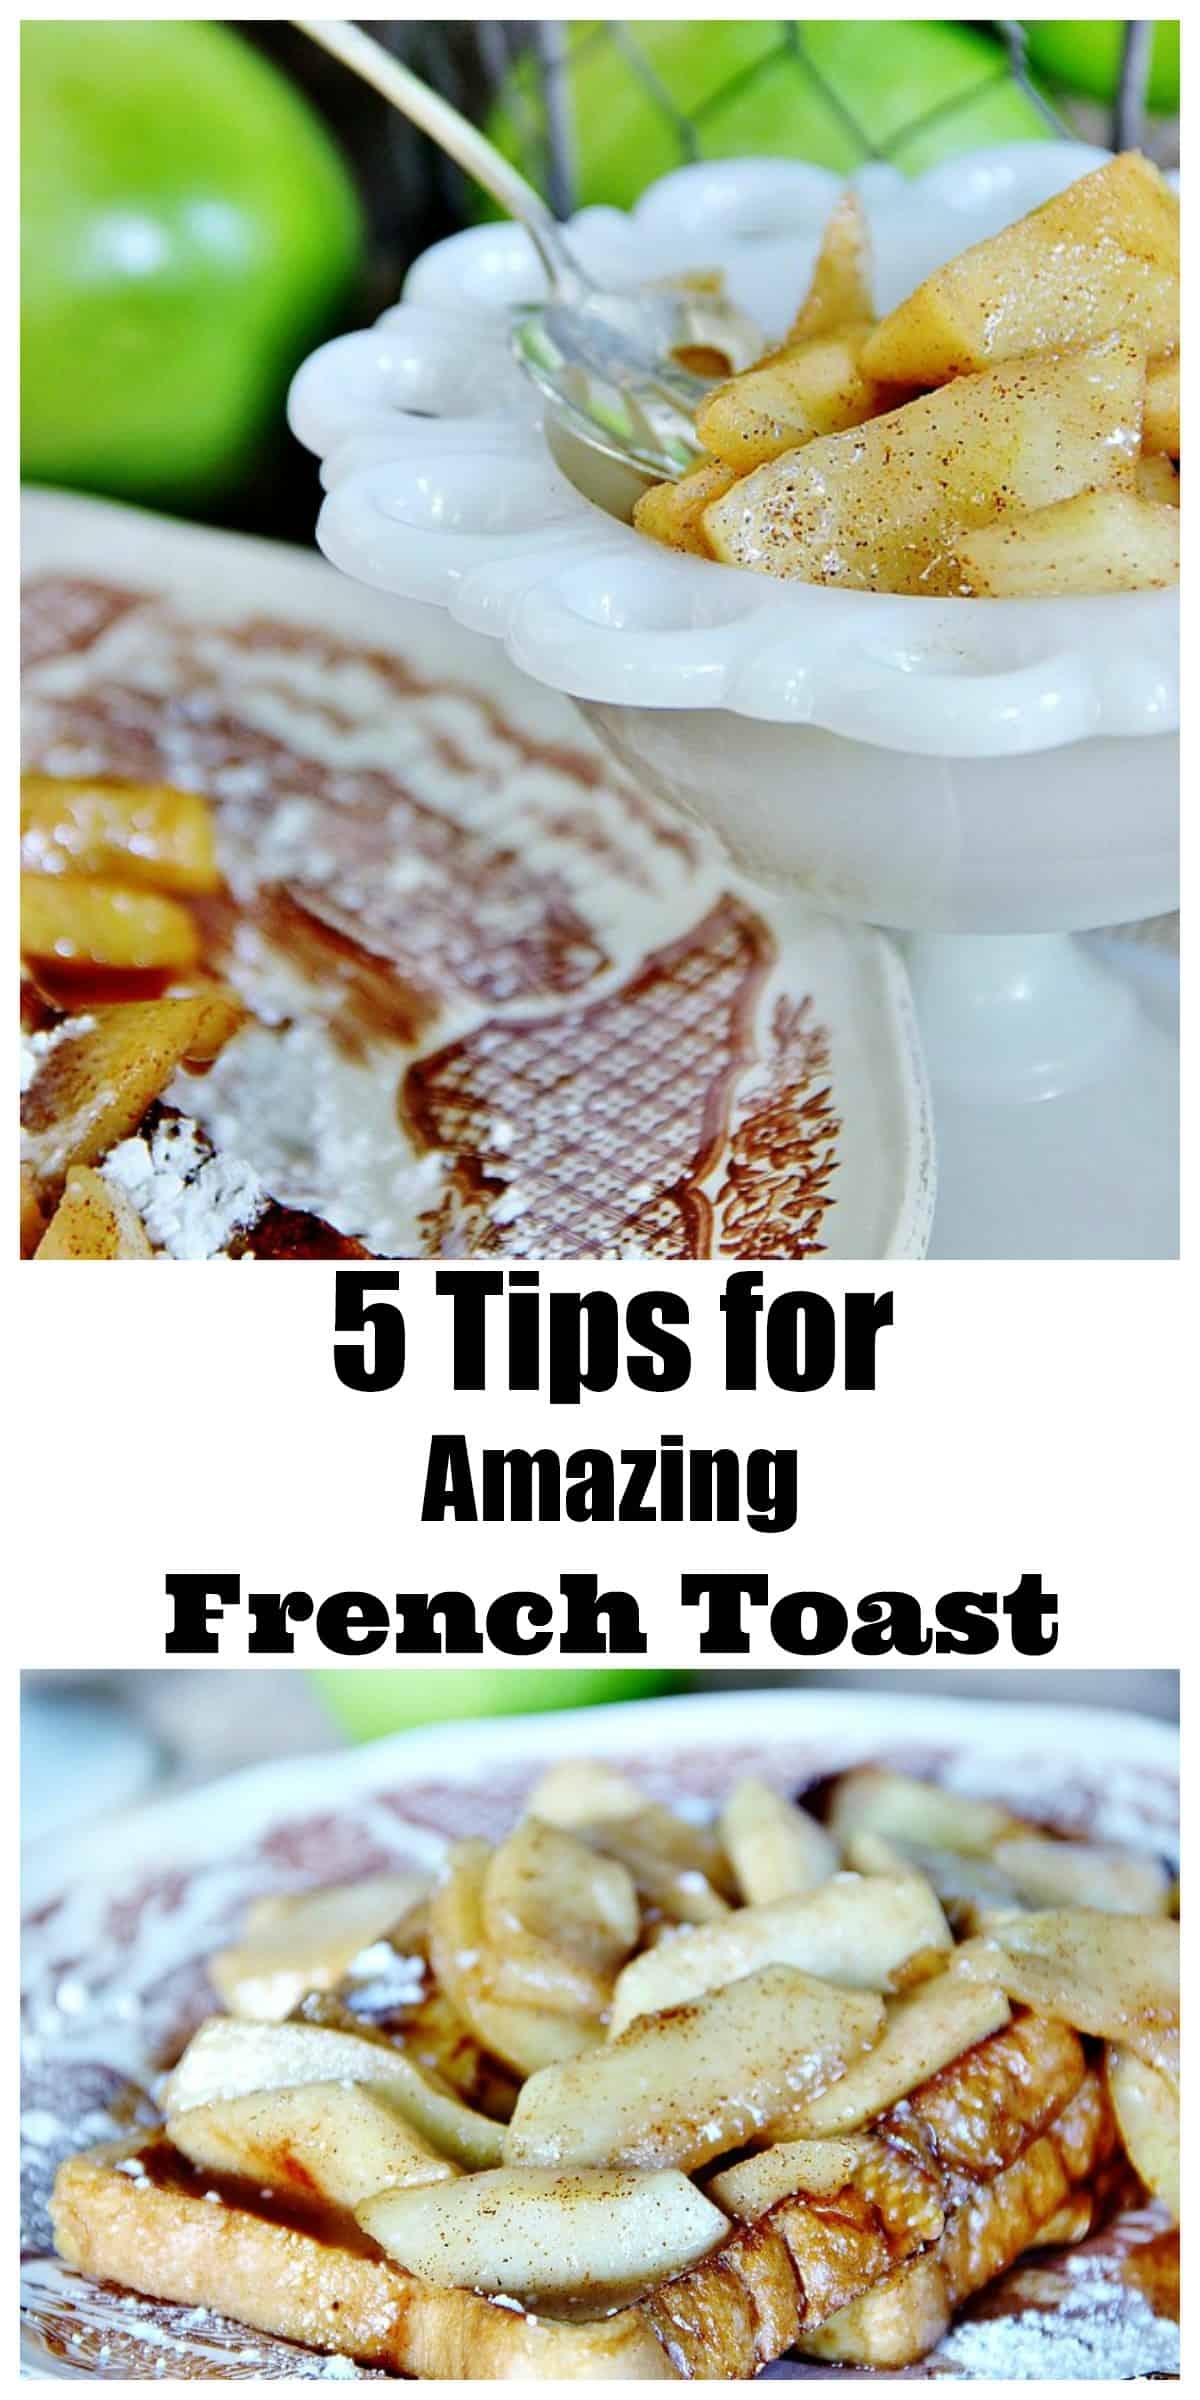 These 5 tips for amazing french toast will make the best treat you've ever had.